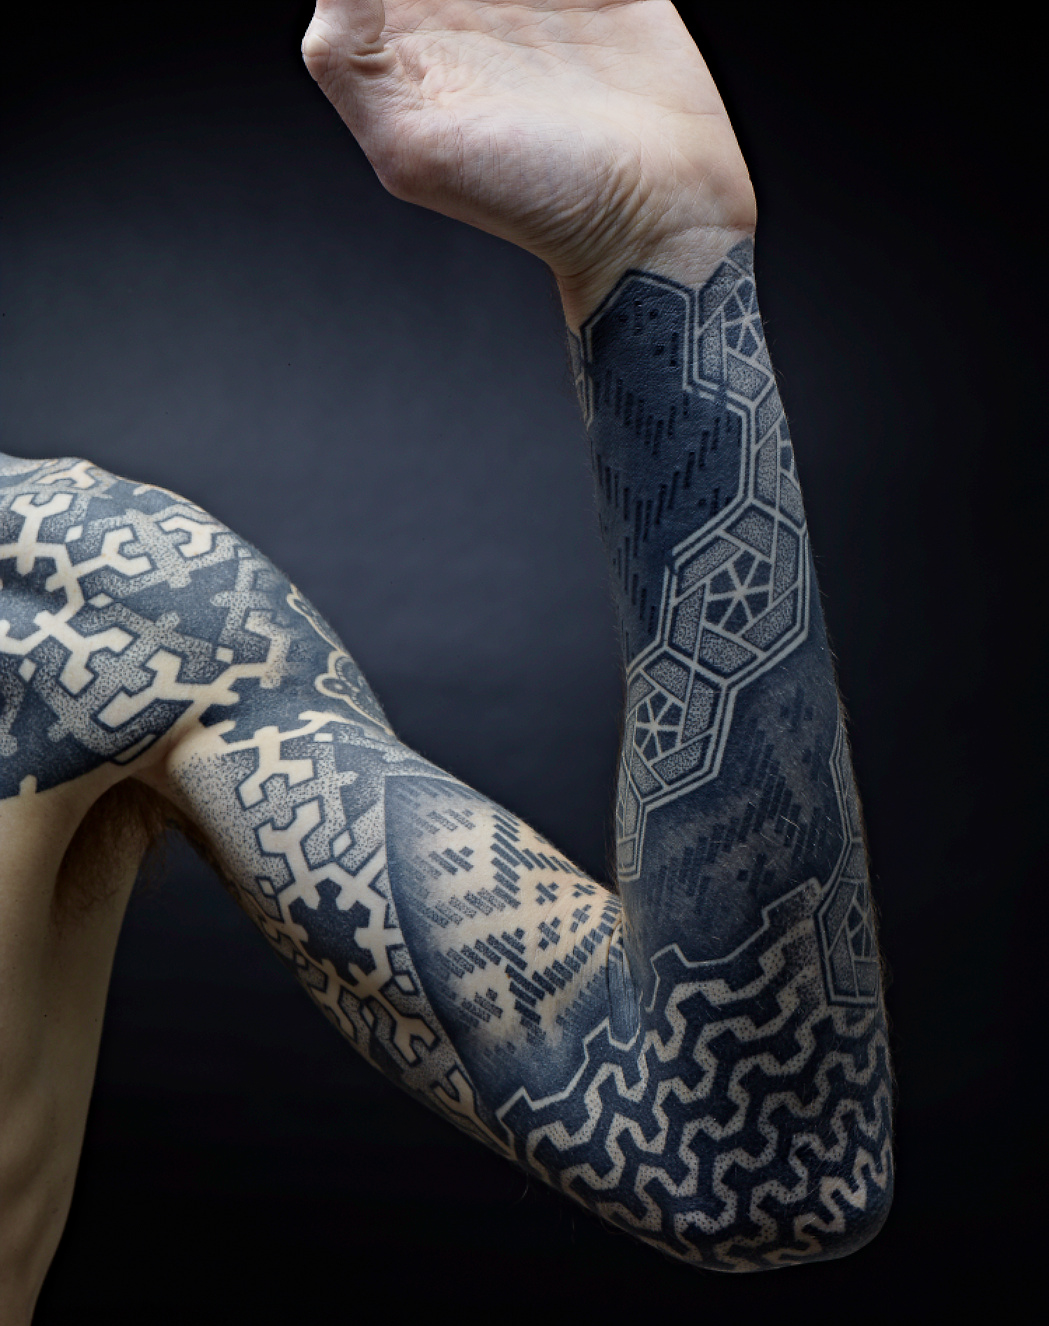 geometric-full-sleeve-tattoo